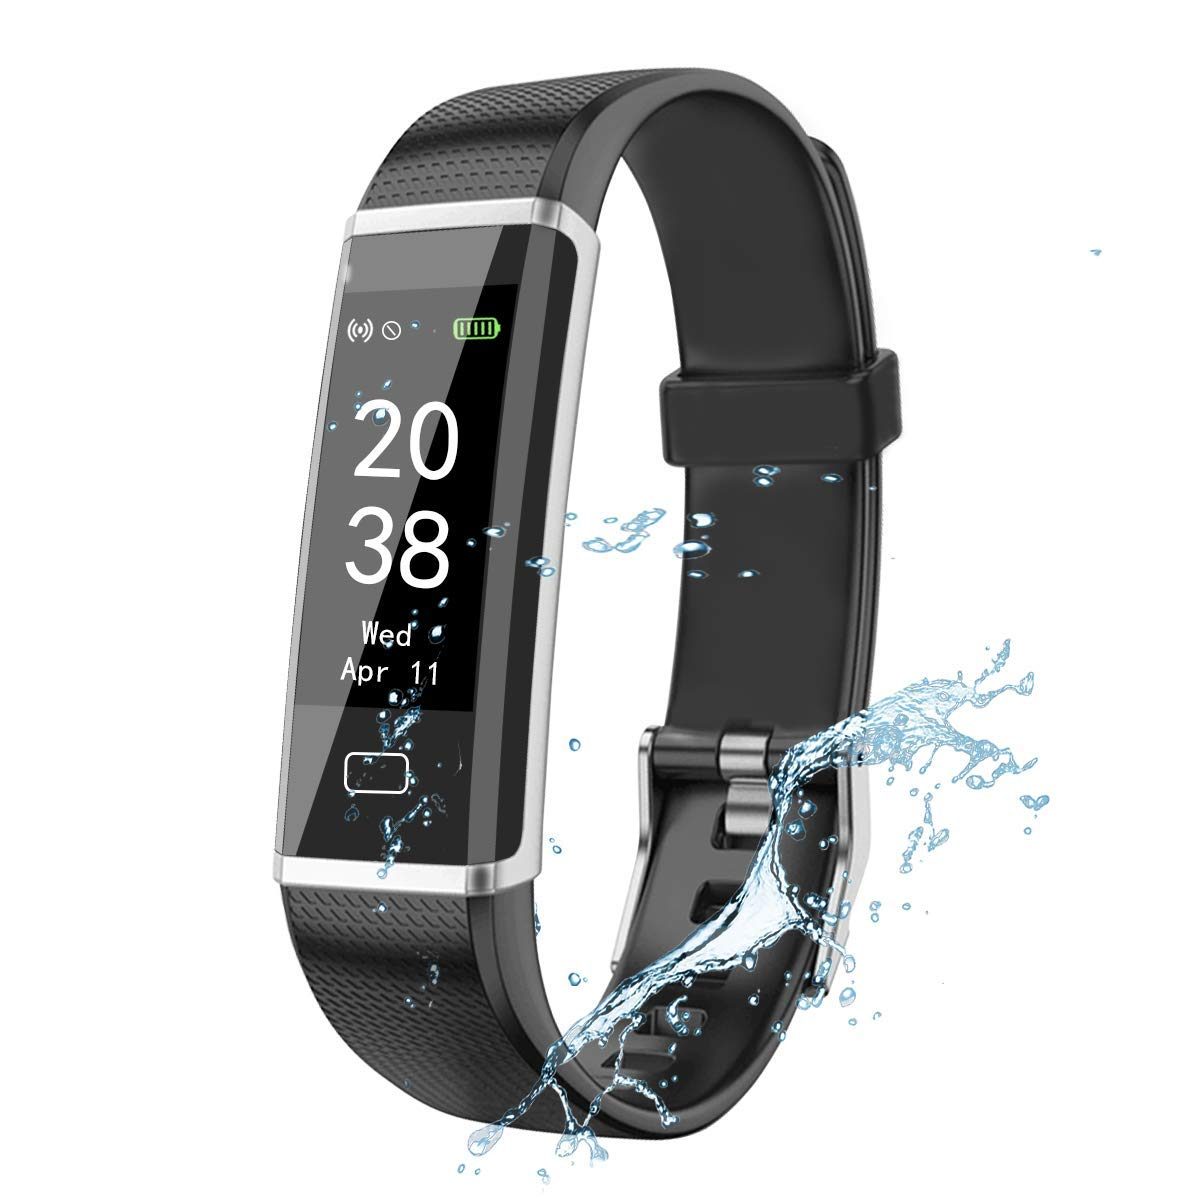 FUELUS Multi-Functional Fitness Tracker Heart Rate Monitor Fitness Watch Has IP68 Waterproof, Motion Tracker and Sleep Monitor, Intelligent Bracelet Pedometer Wristband and A Variety of Motion Modes.